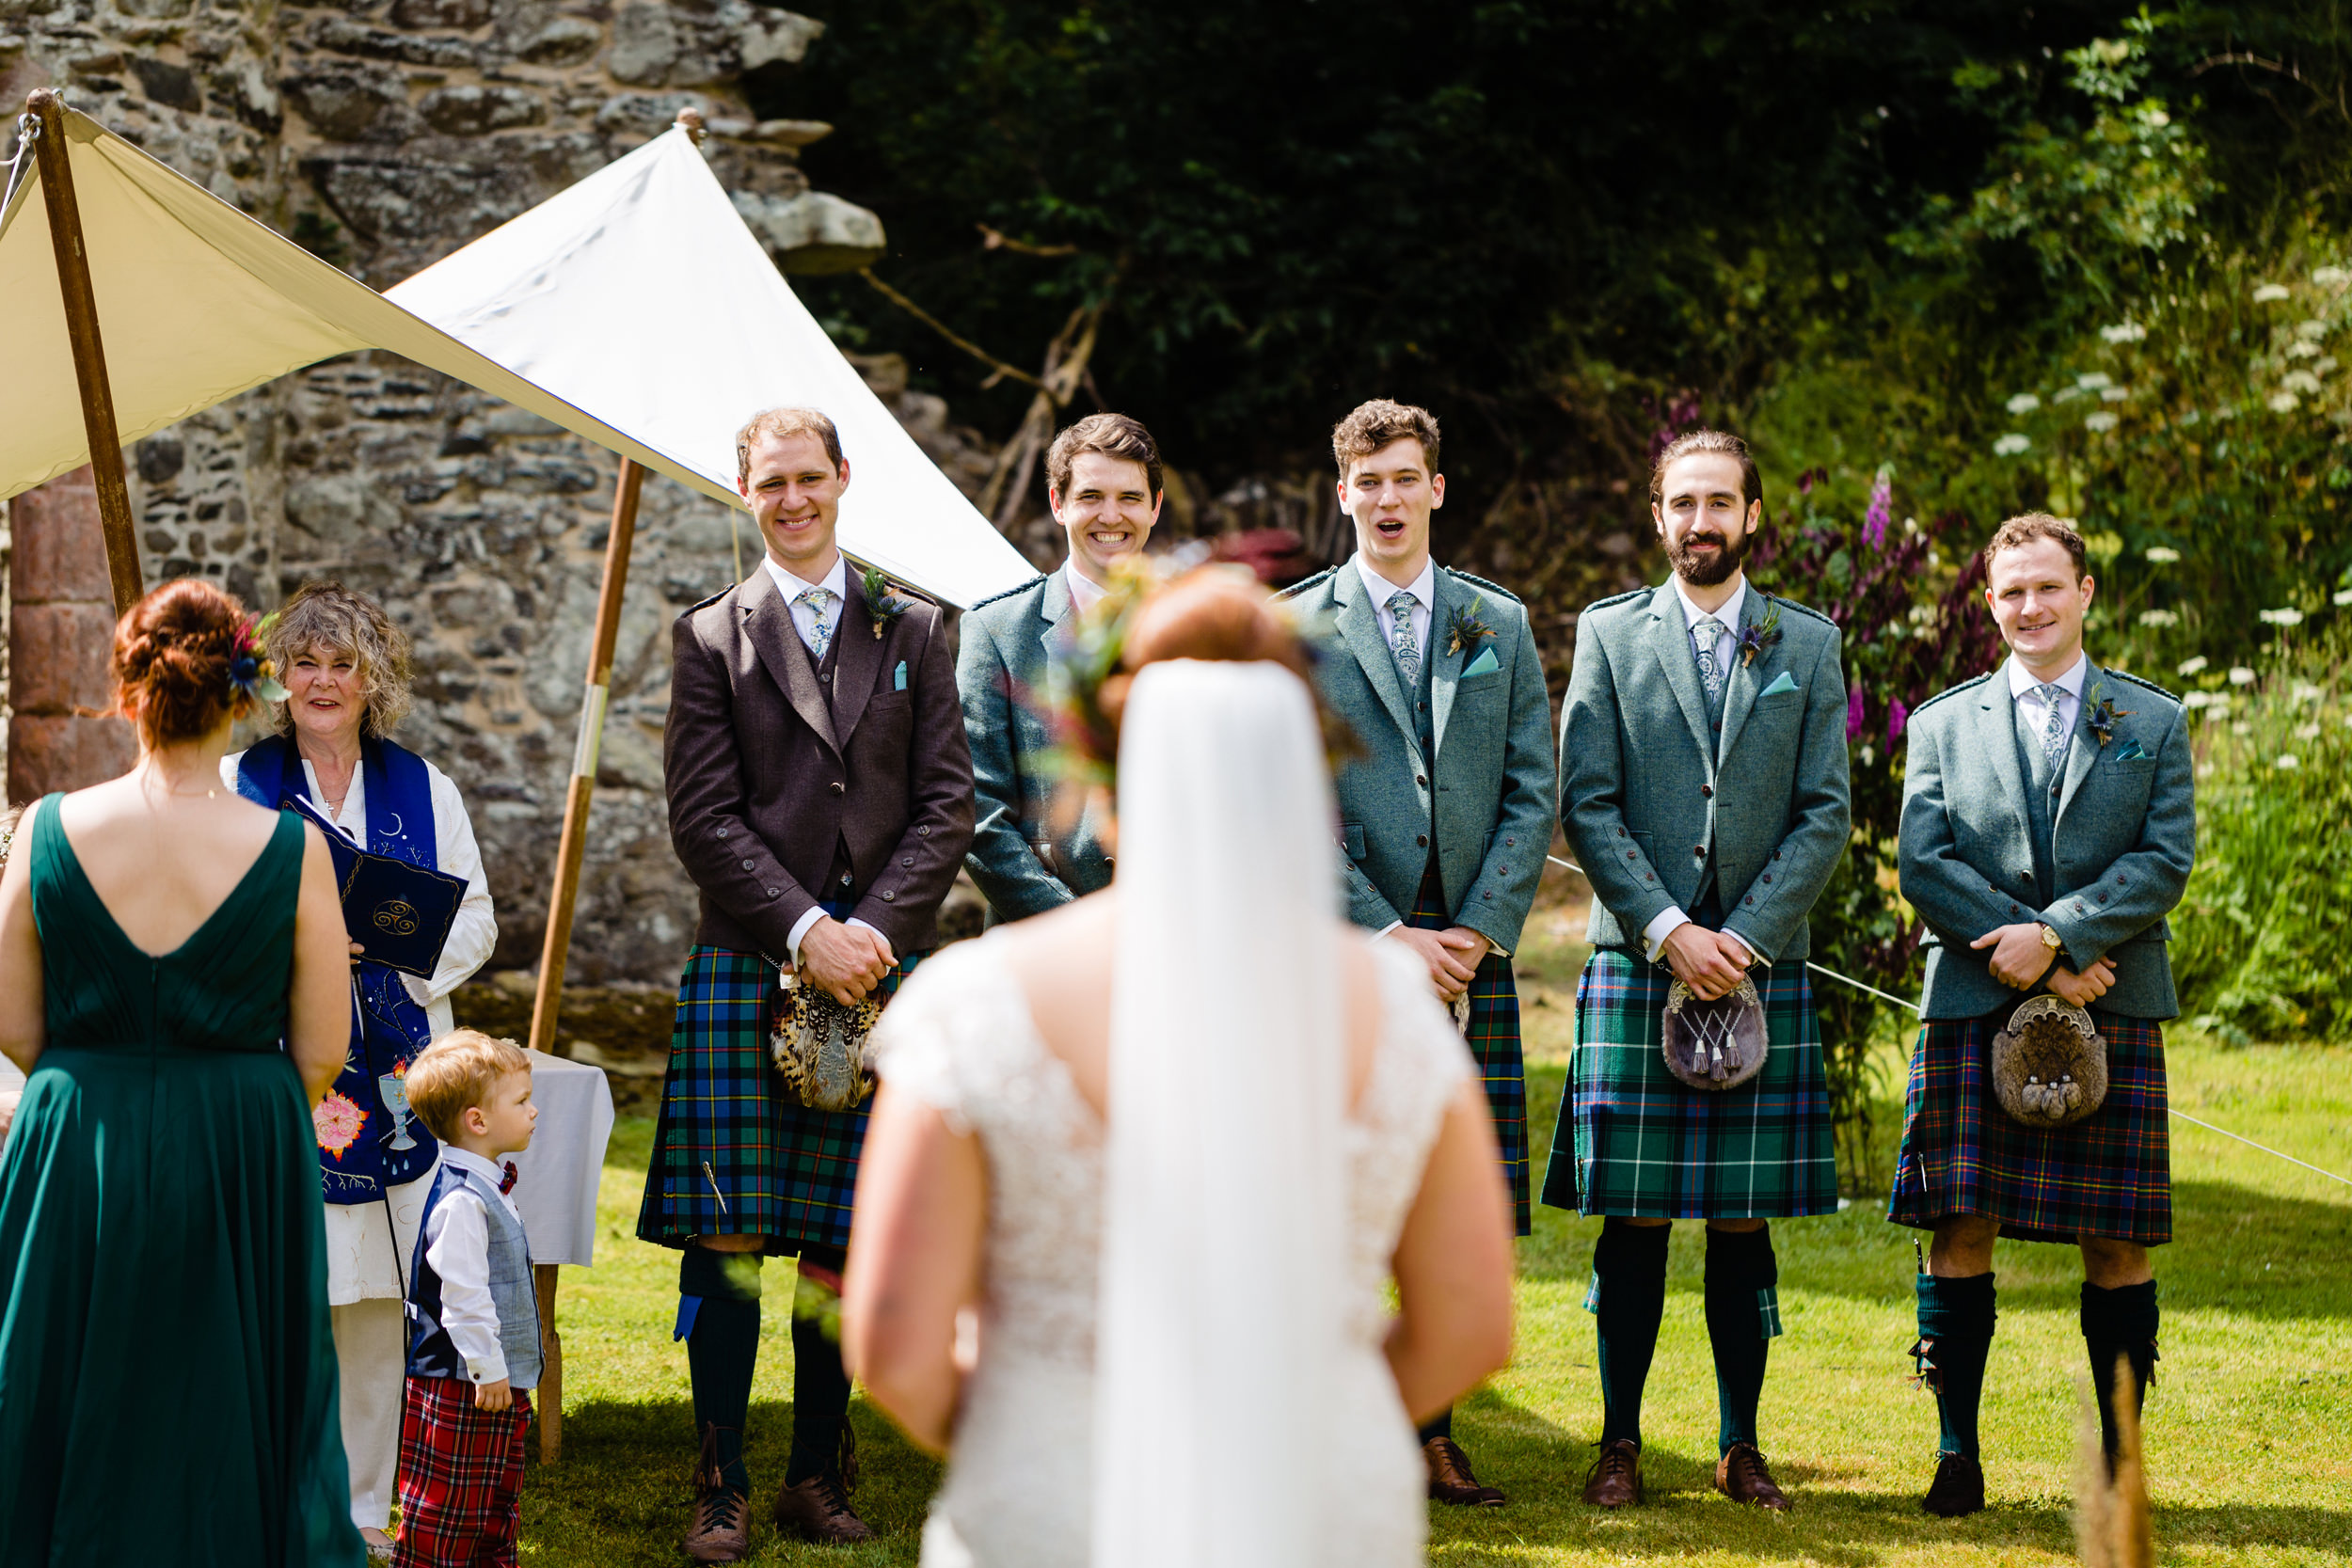 groom smiling at bride walking down the aisle. scotland wedding photography by emma and rich.